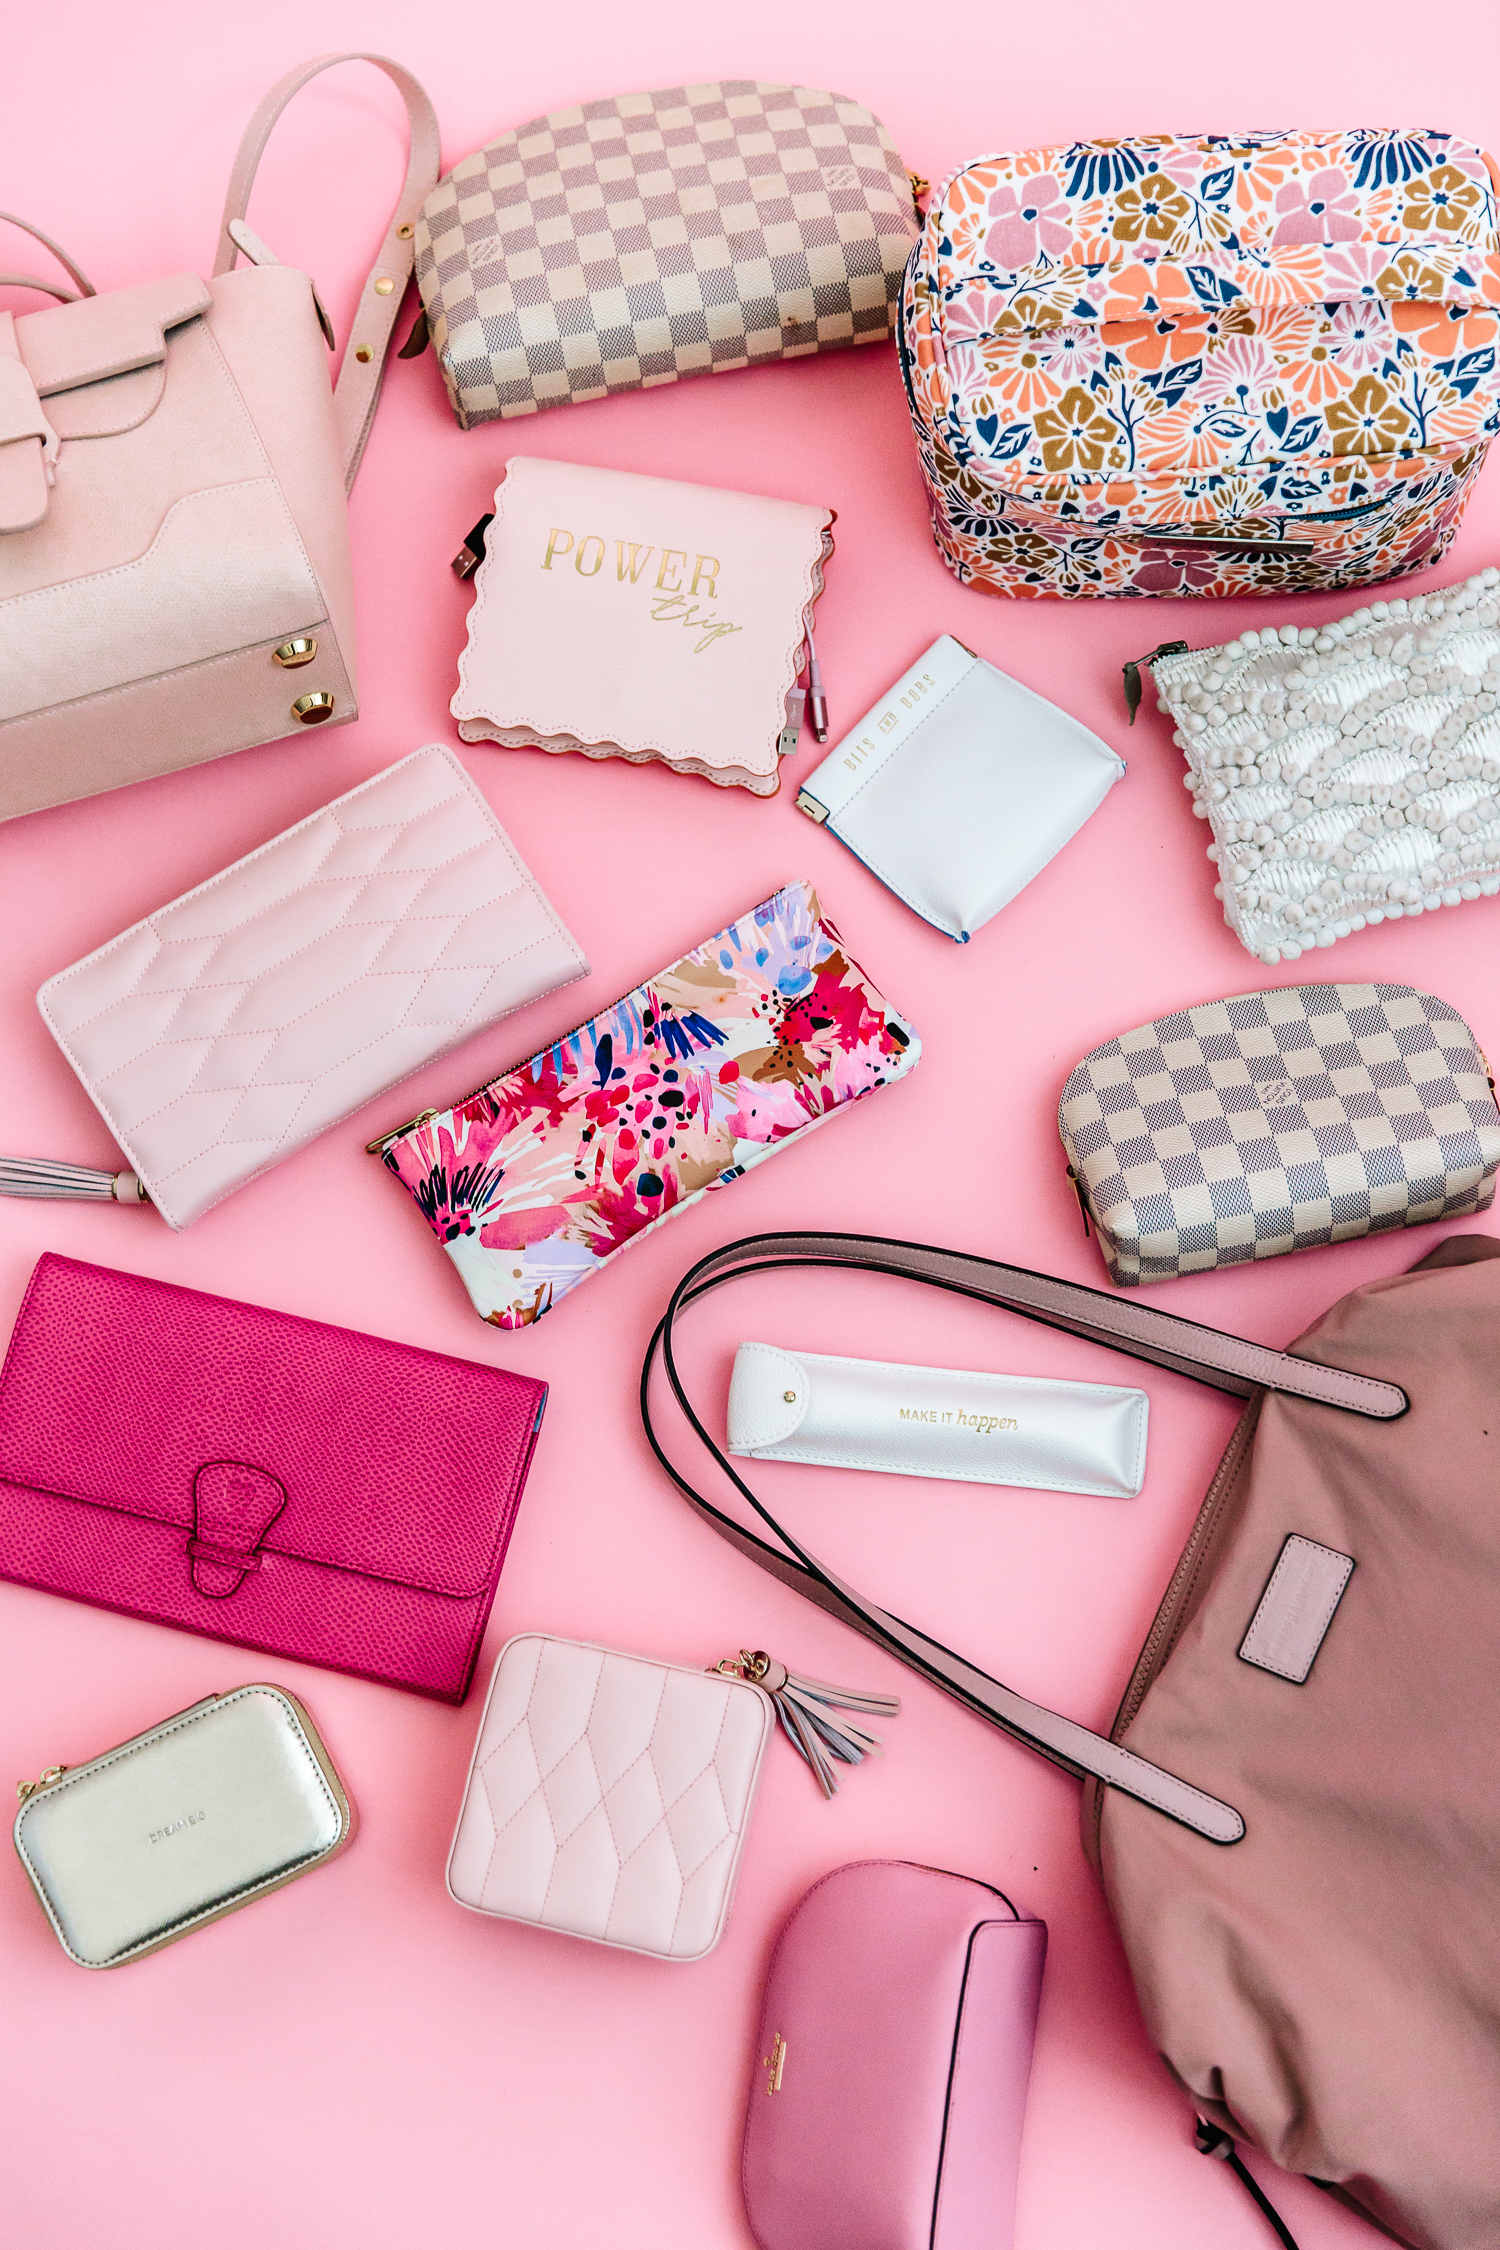 travel bags, aspinal of london, alyson haley, rebecca minkoff, the best travel bags, cosmetic case, senreve